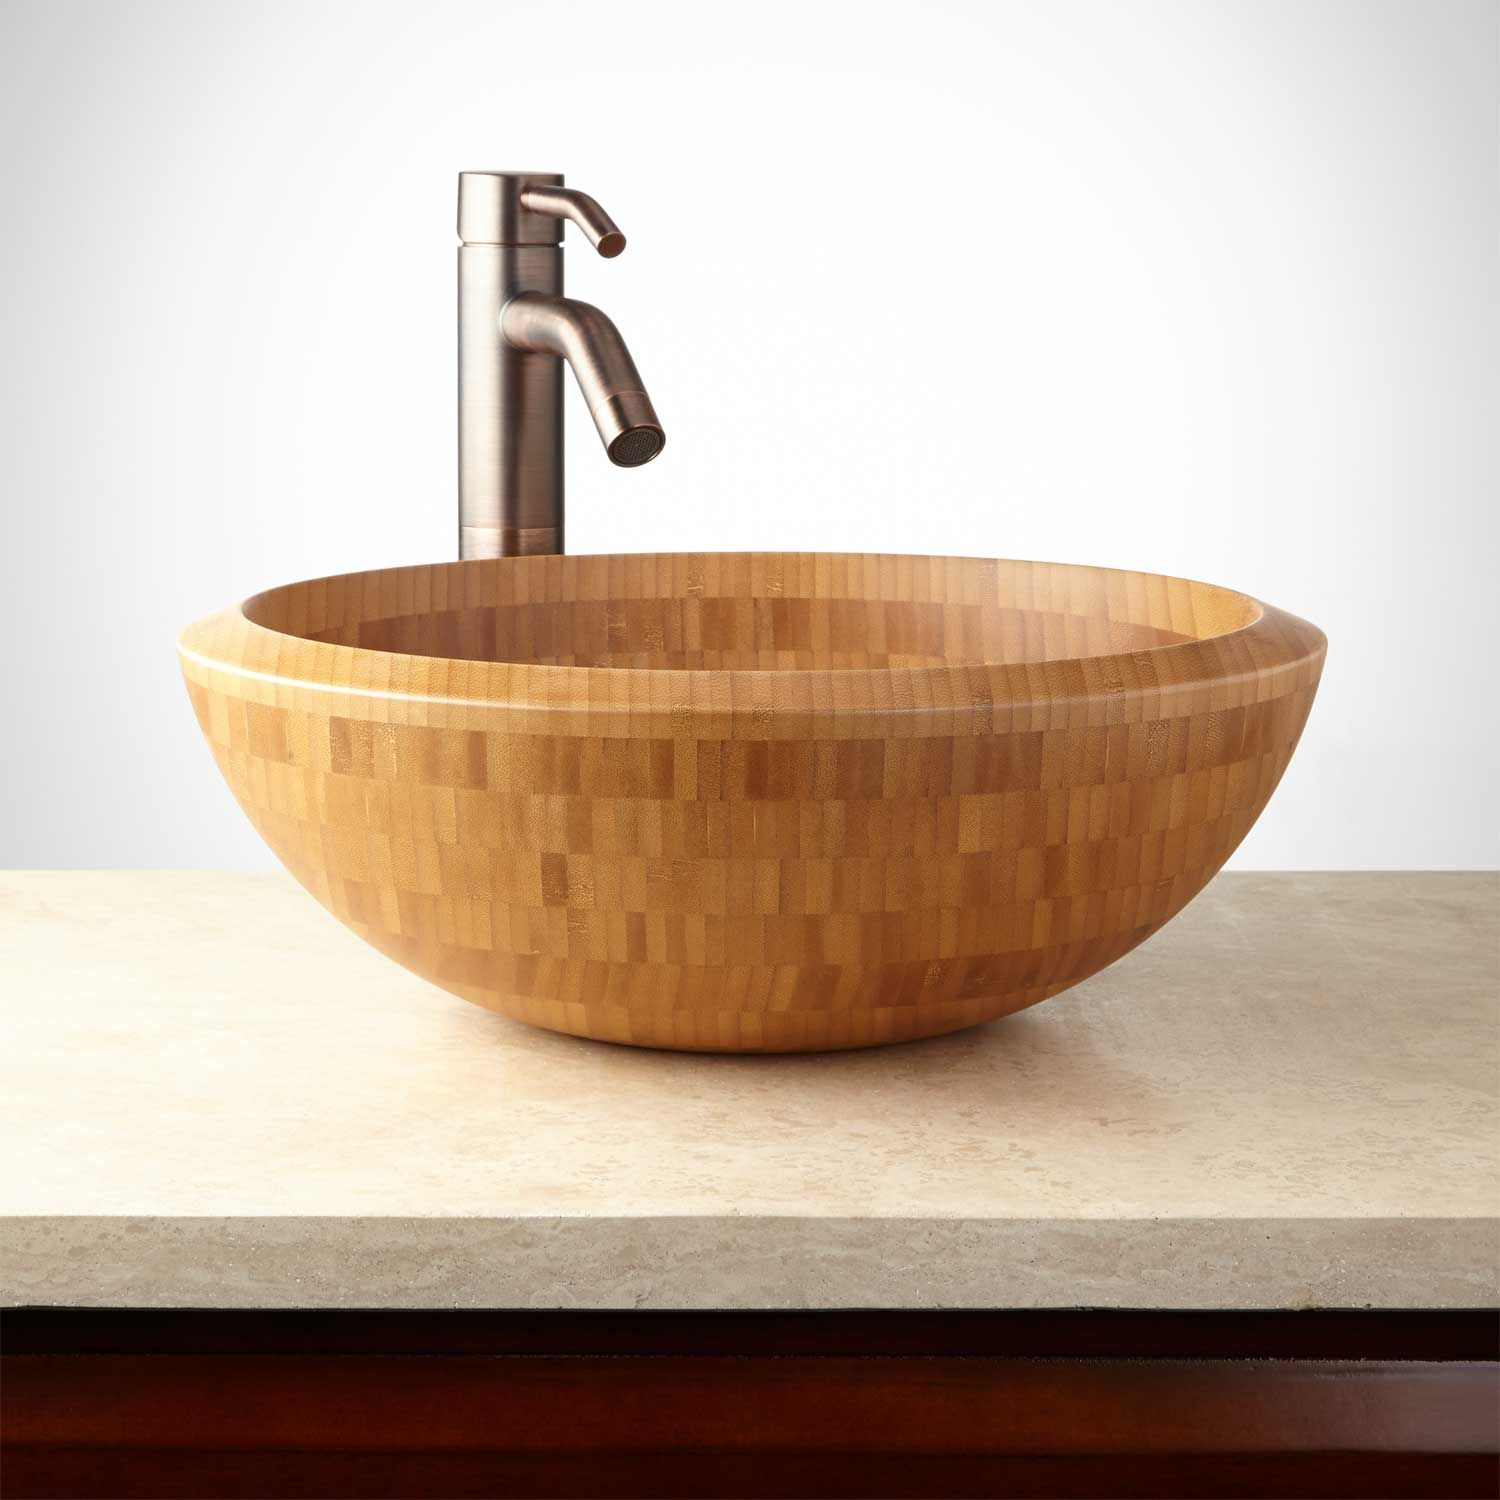 Round Bamboo Vessel Sink | Vessel sink, Sinks and Products